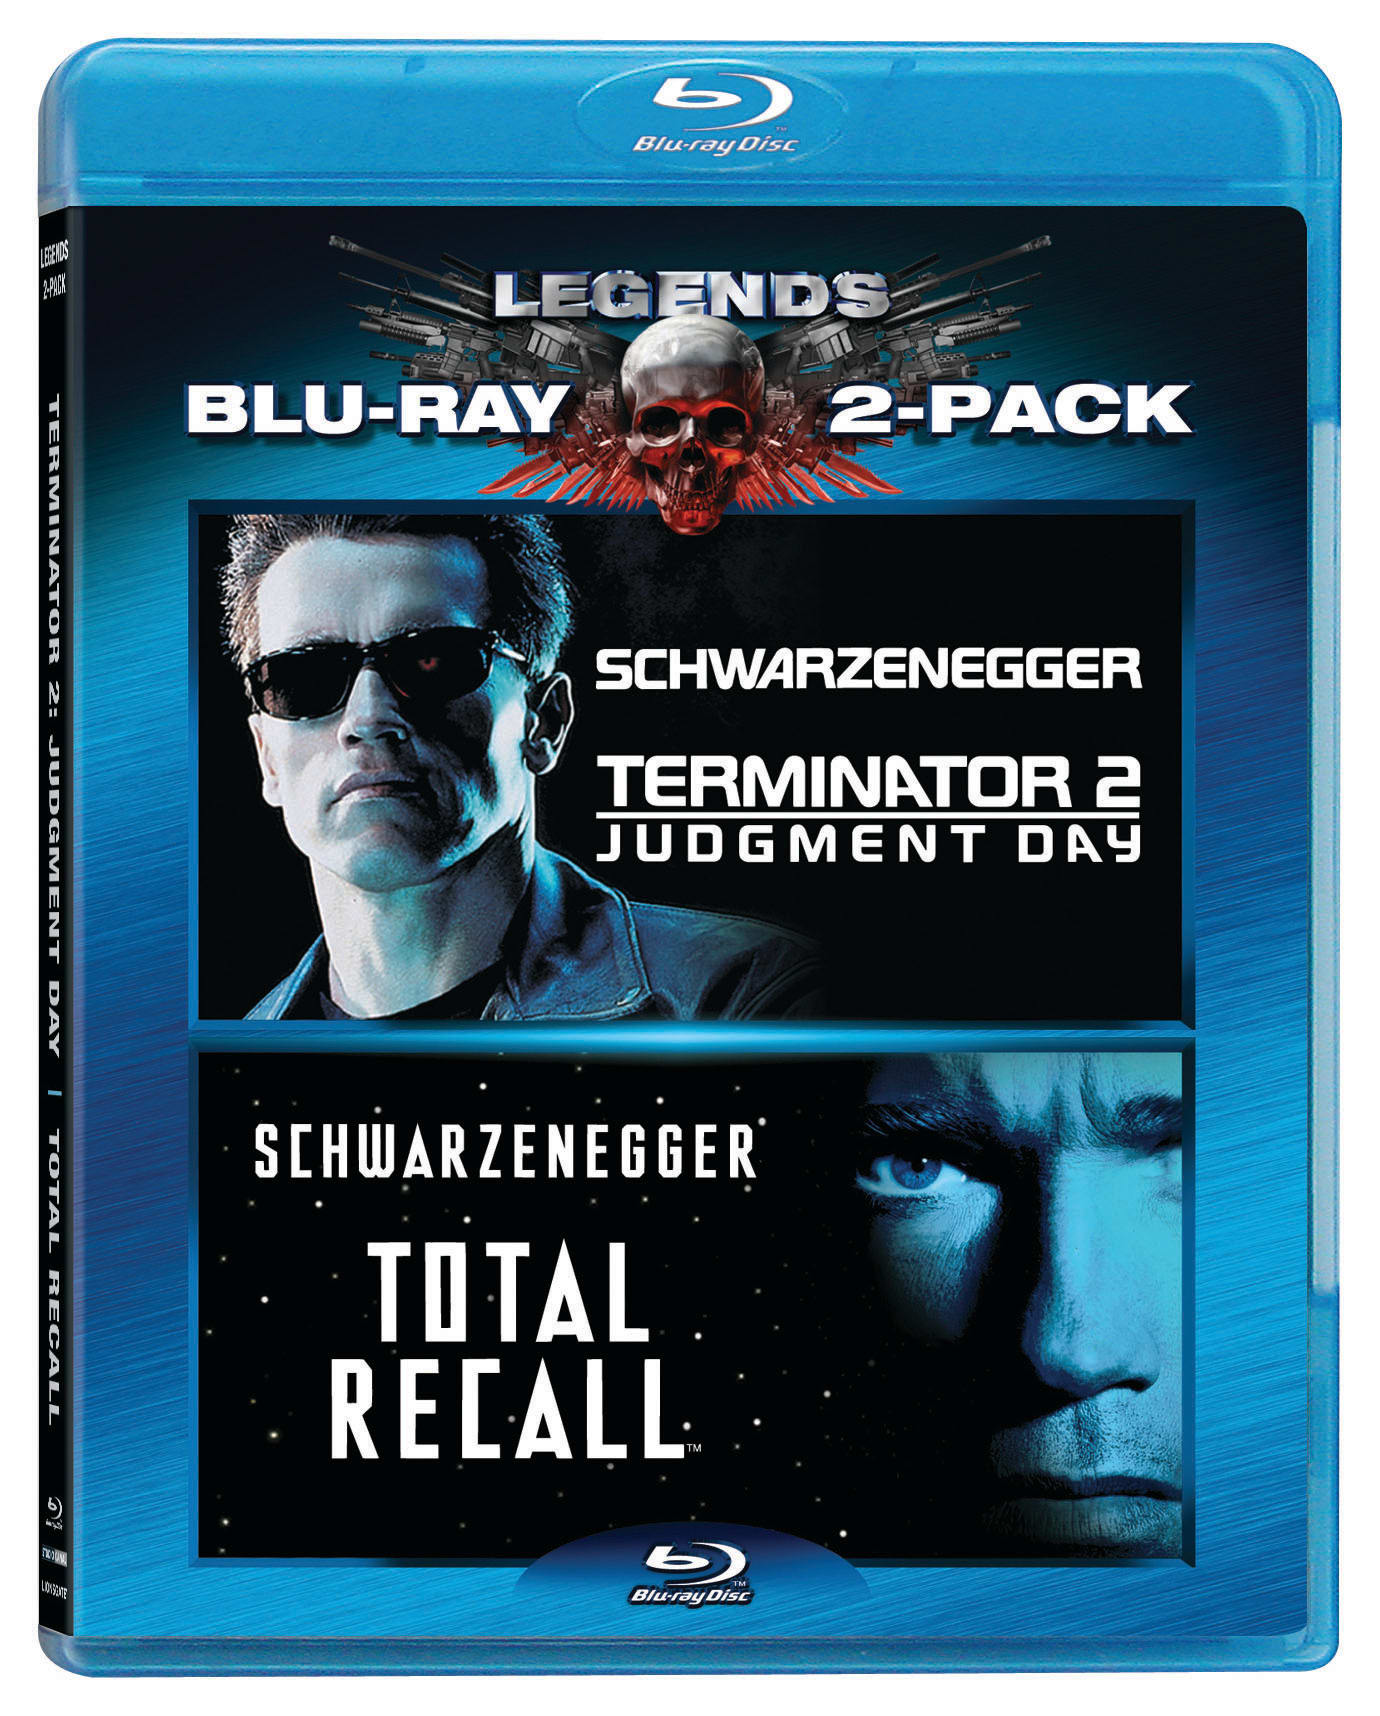 Terminator 2 - Judgement Day/Total Recall [Blu-ray]